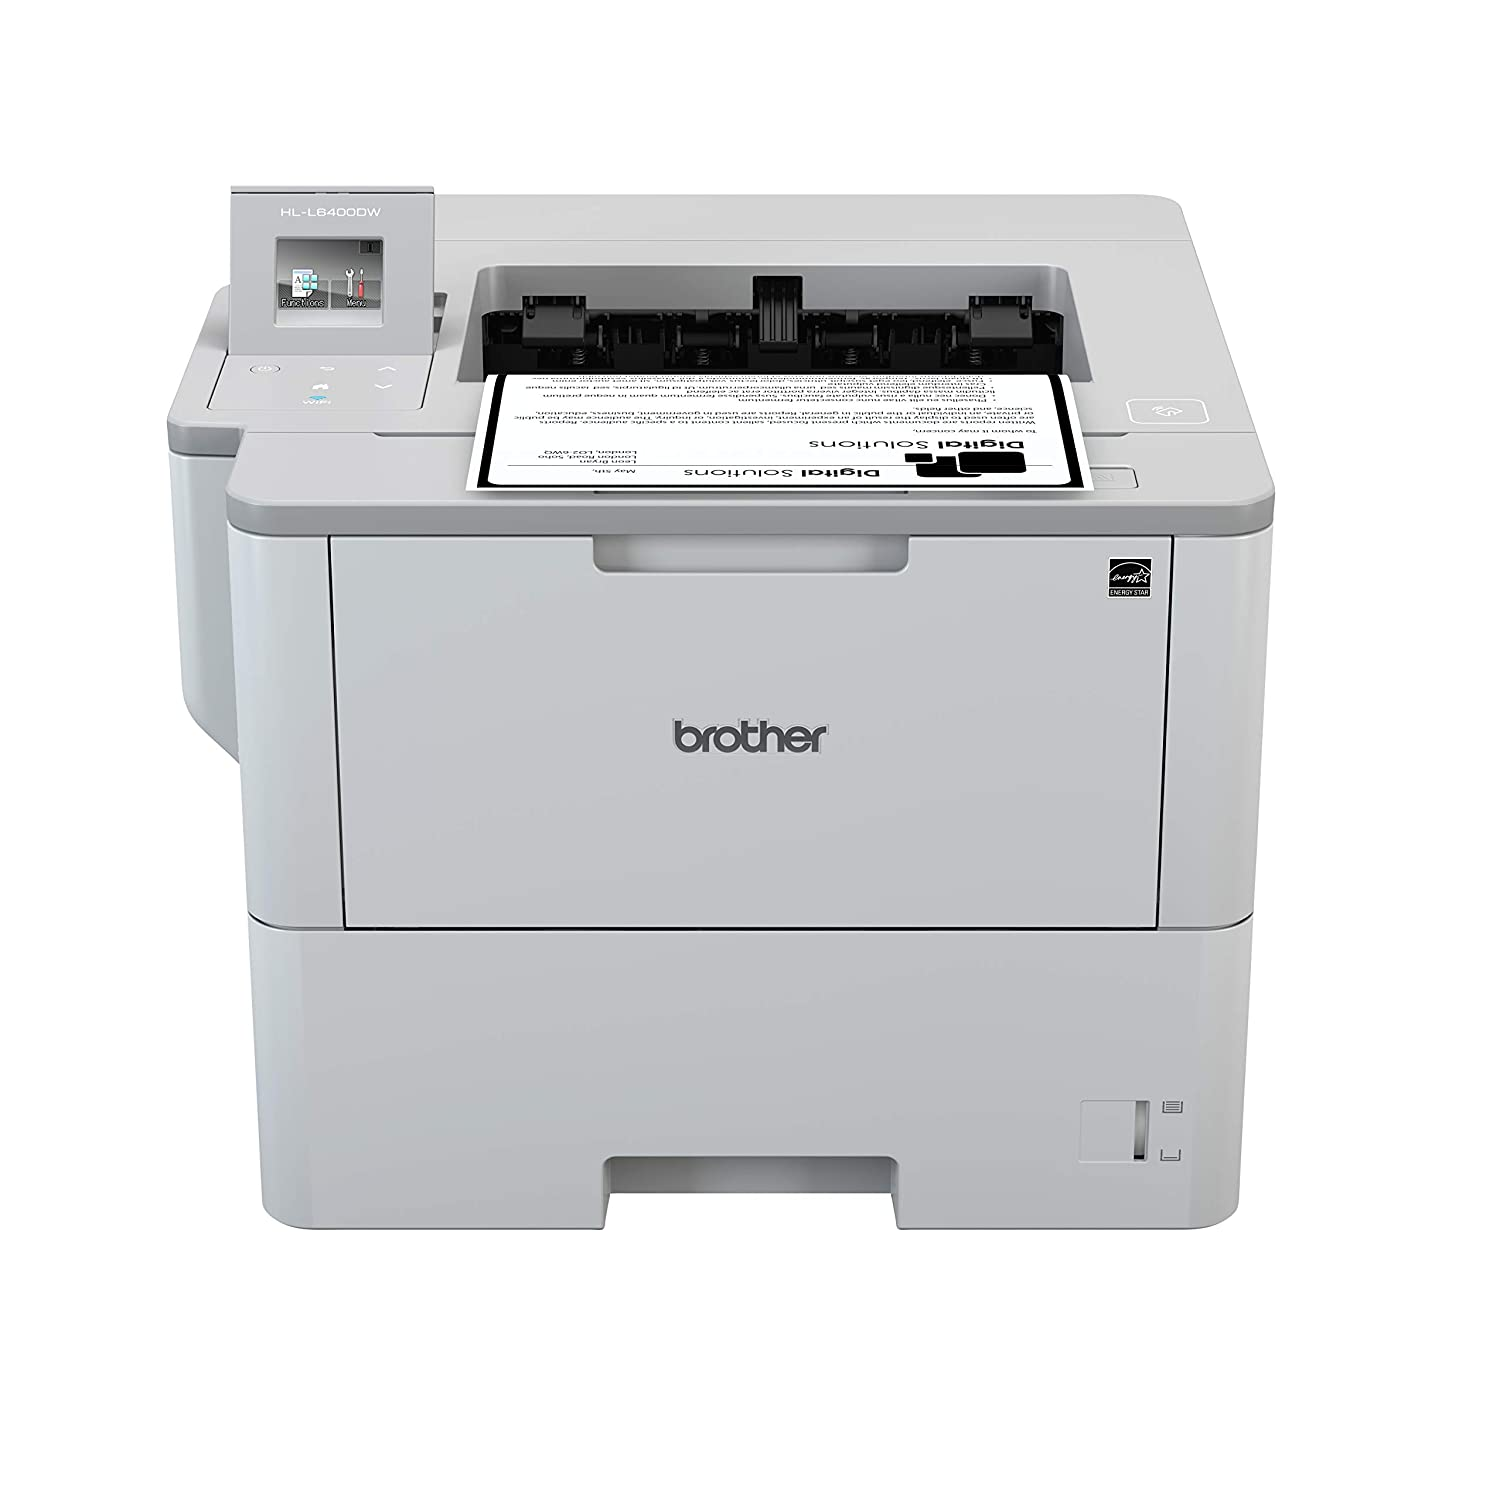 Brother HL-L6300DW - Impresora láser profesional monocromo (520 hojas, 46 ppm, USB 2.0, doble cara automática, Ethernet, Wifi) + Brother TN3512 - ...